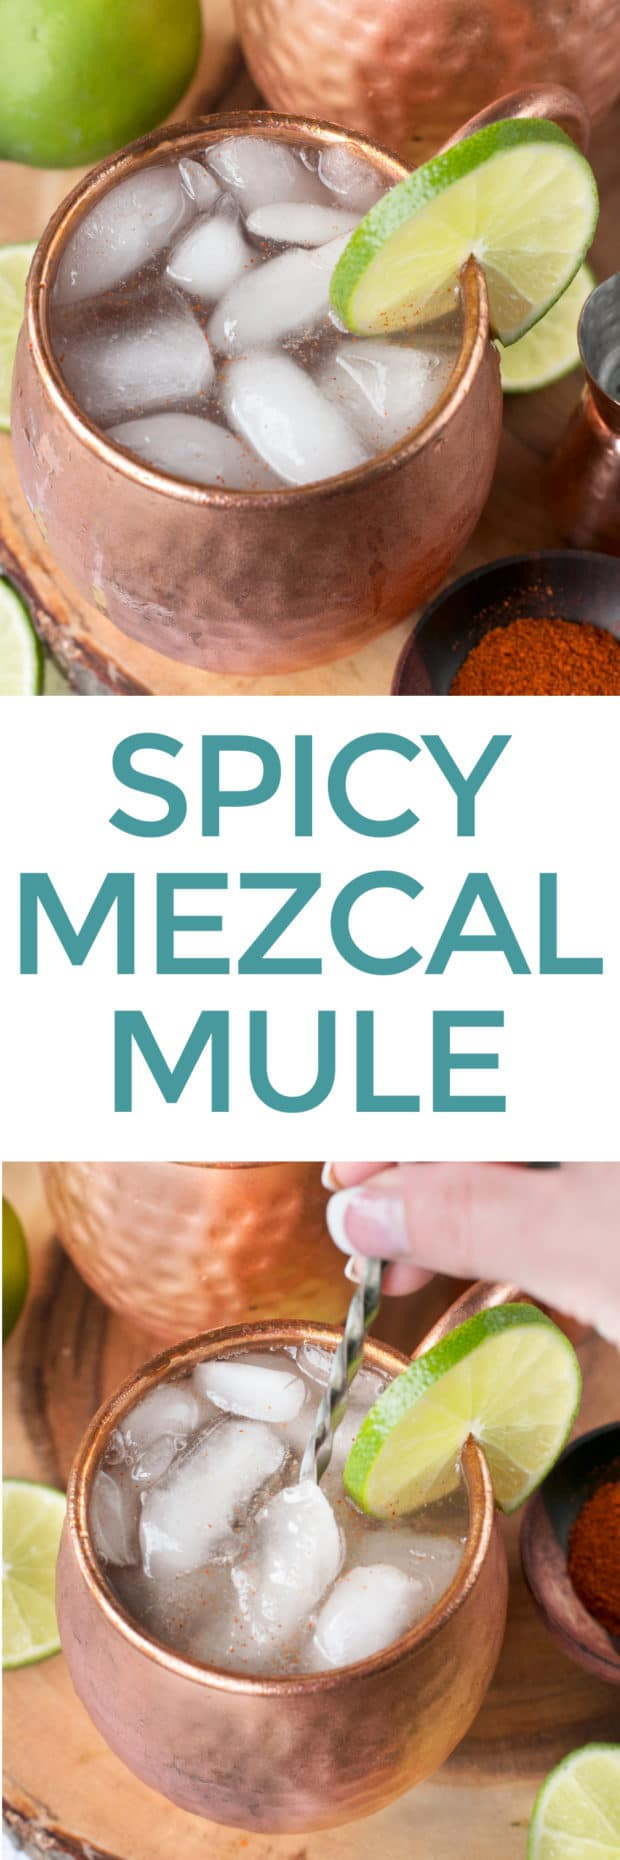 Spicy Mezcal Mule | cakenknife.com #cocktail #fall #moscowmule